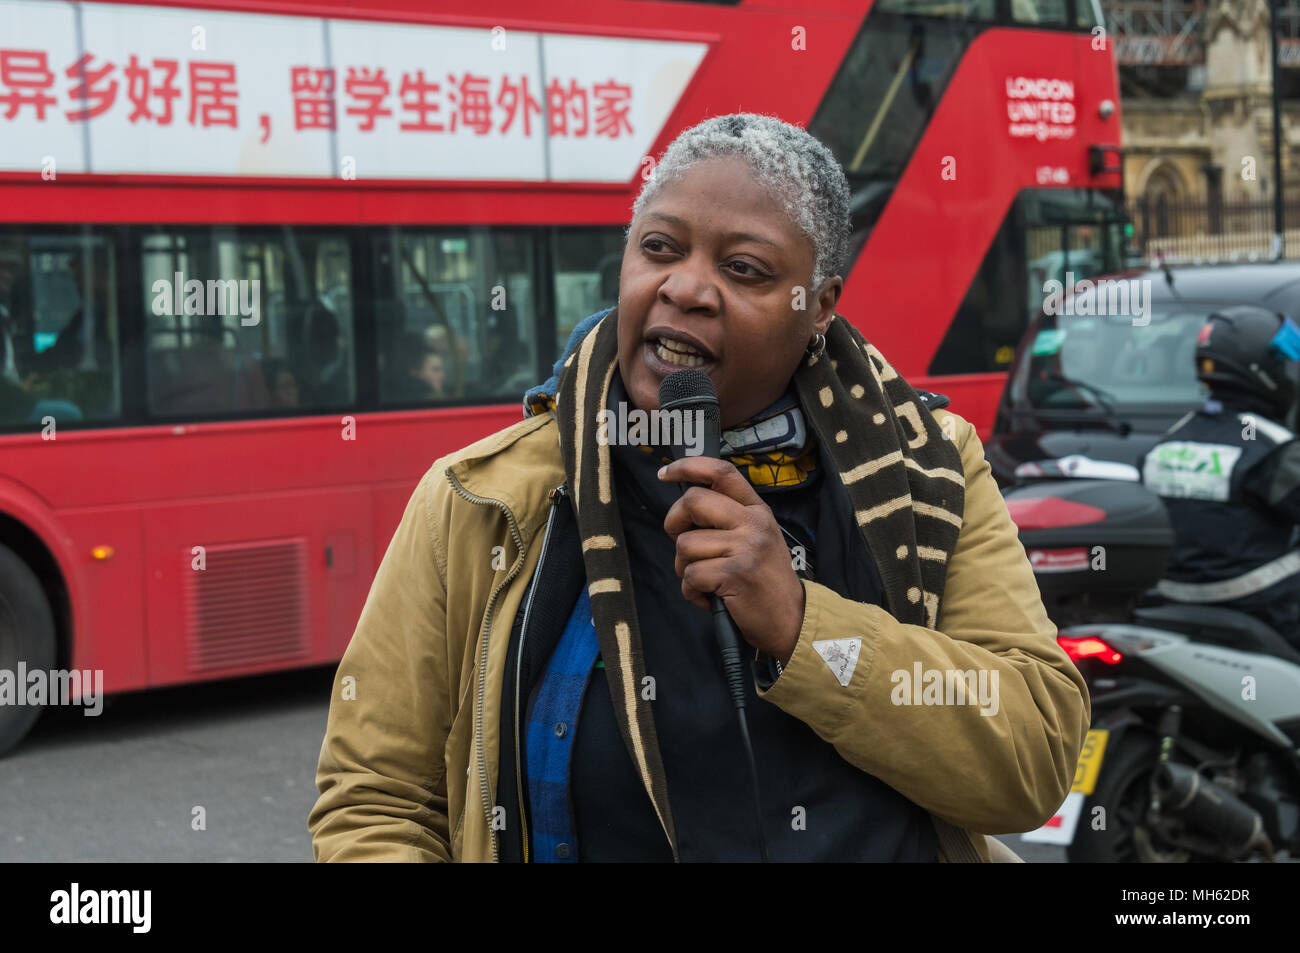 London, UK. 30th April 2018.  A Londoner speaks about the Grenfell fire and the failures of local and national governemnt it has exposed at the protest in support of the petition calling for an end to the deportations of migrants in the 'Windrush generation' who arrived in Britain between 1948 and 1971. It calls on the government to change the burden of proof which means they are now required to prove their right to remain, and to provide compensation for any loss and hurt.. Most of those who have been deported, threatened with deportation or refused entry after visiting families abroad have w - Stock Image